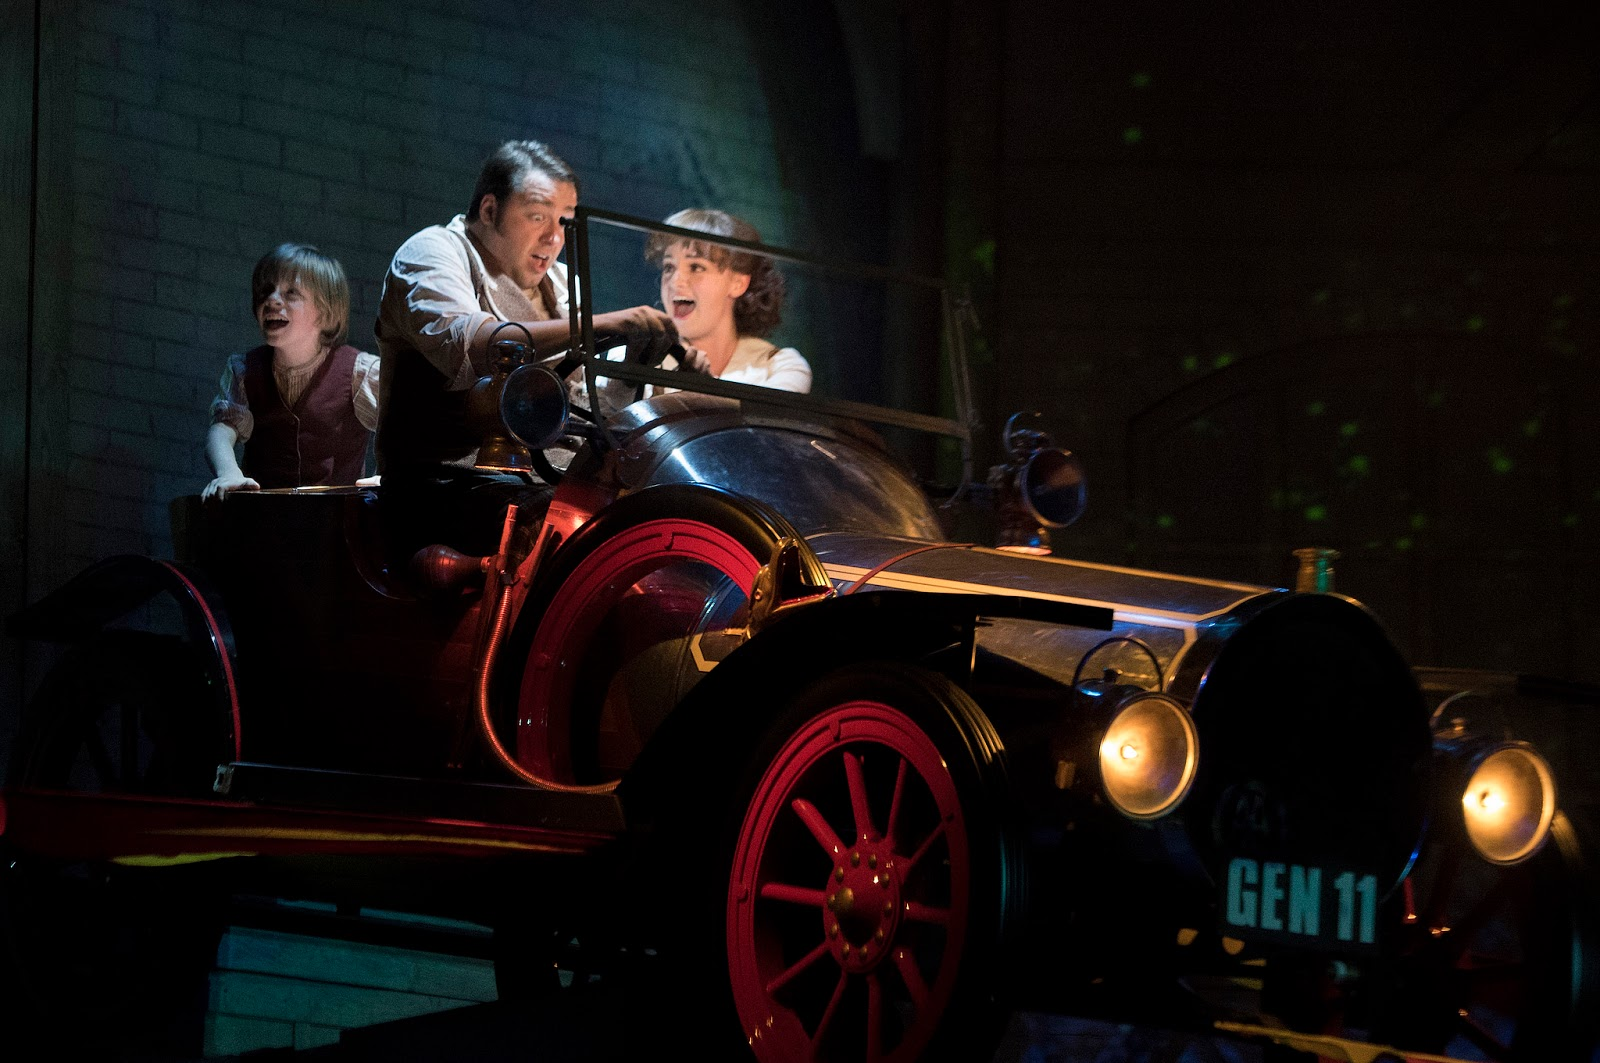 Chitty Chitty Bang Bang Muscal Review